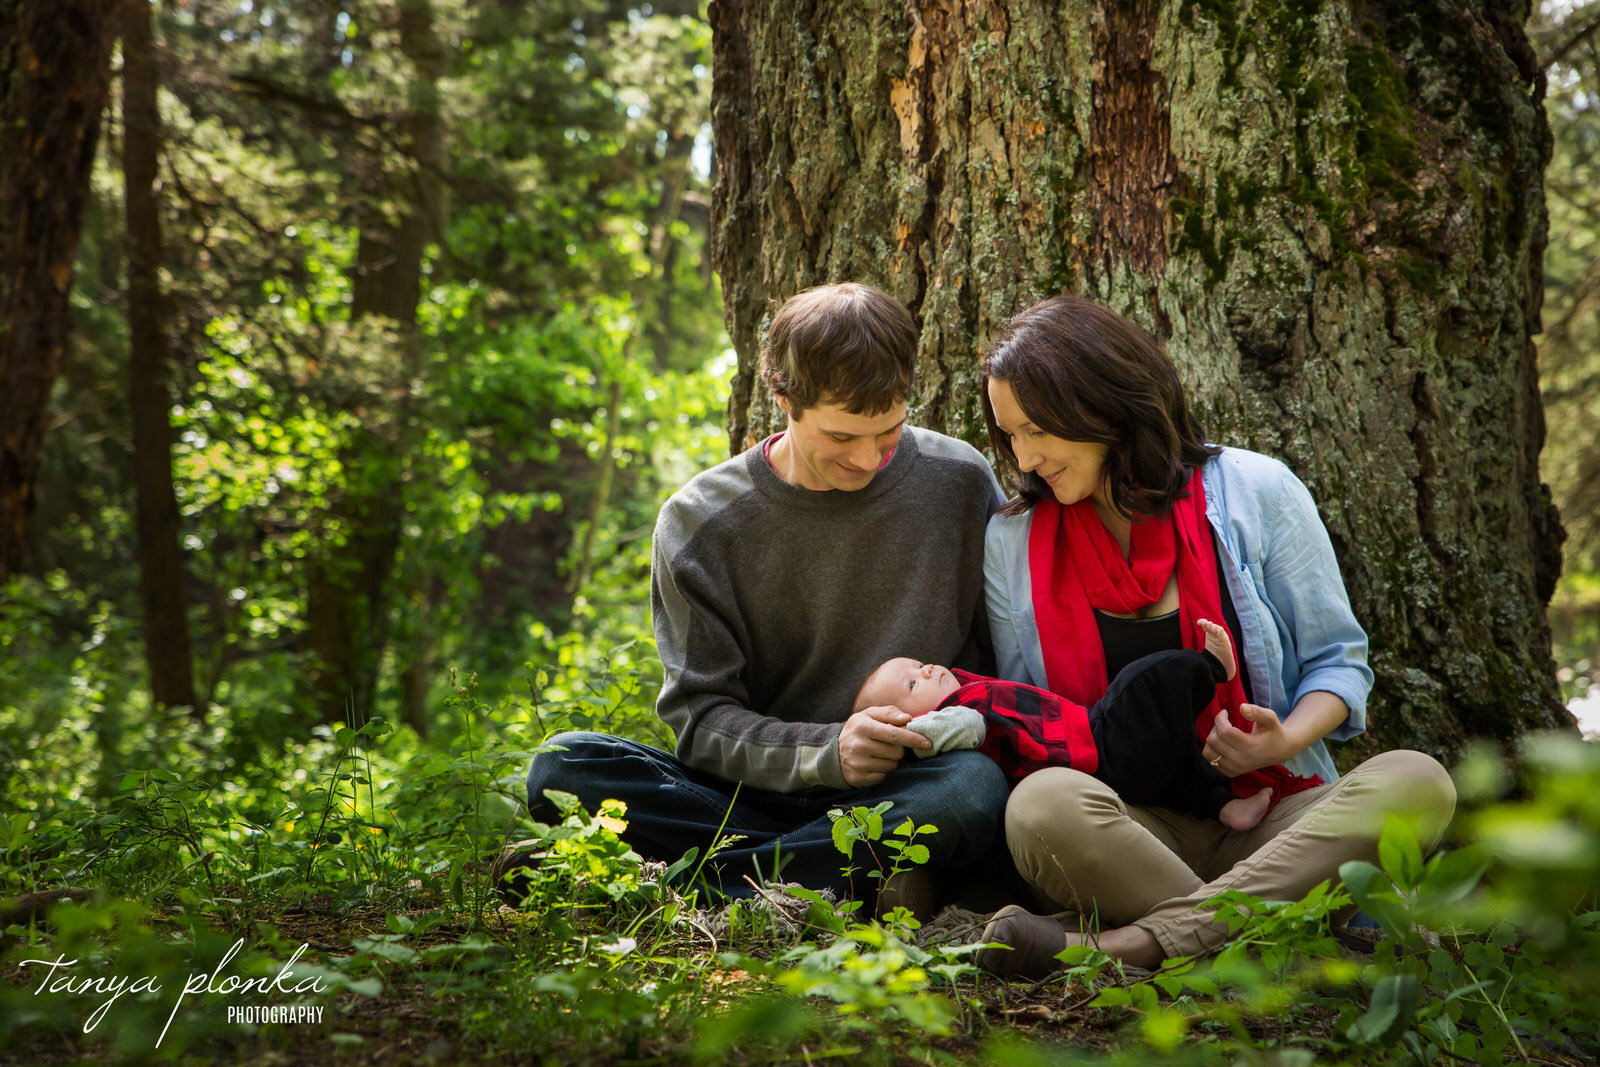 mom and dad sit below large tree in forest while holding newborn baby